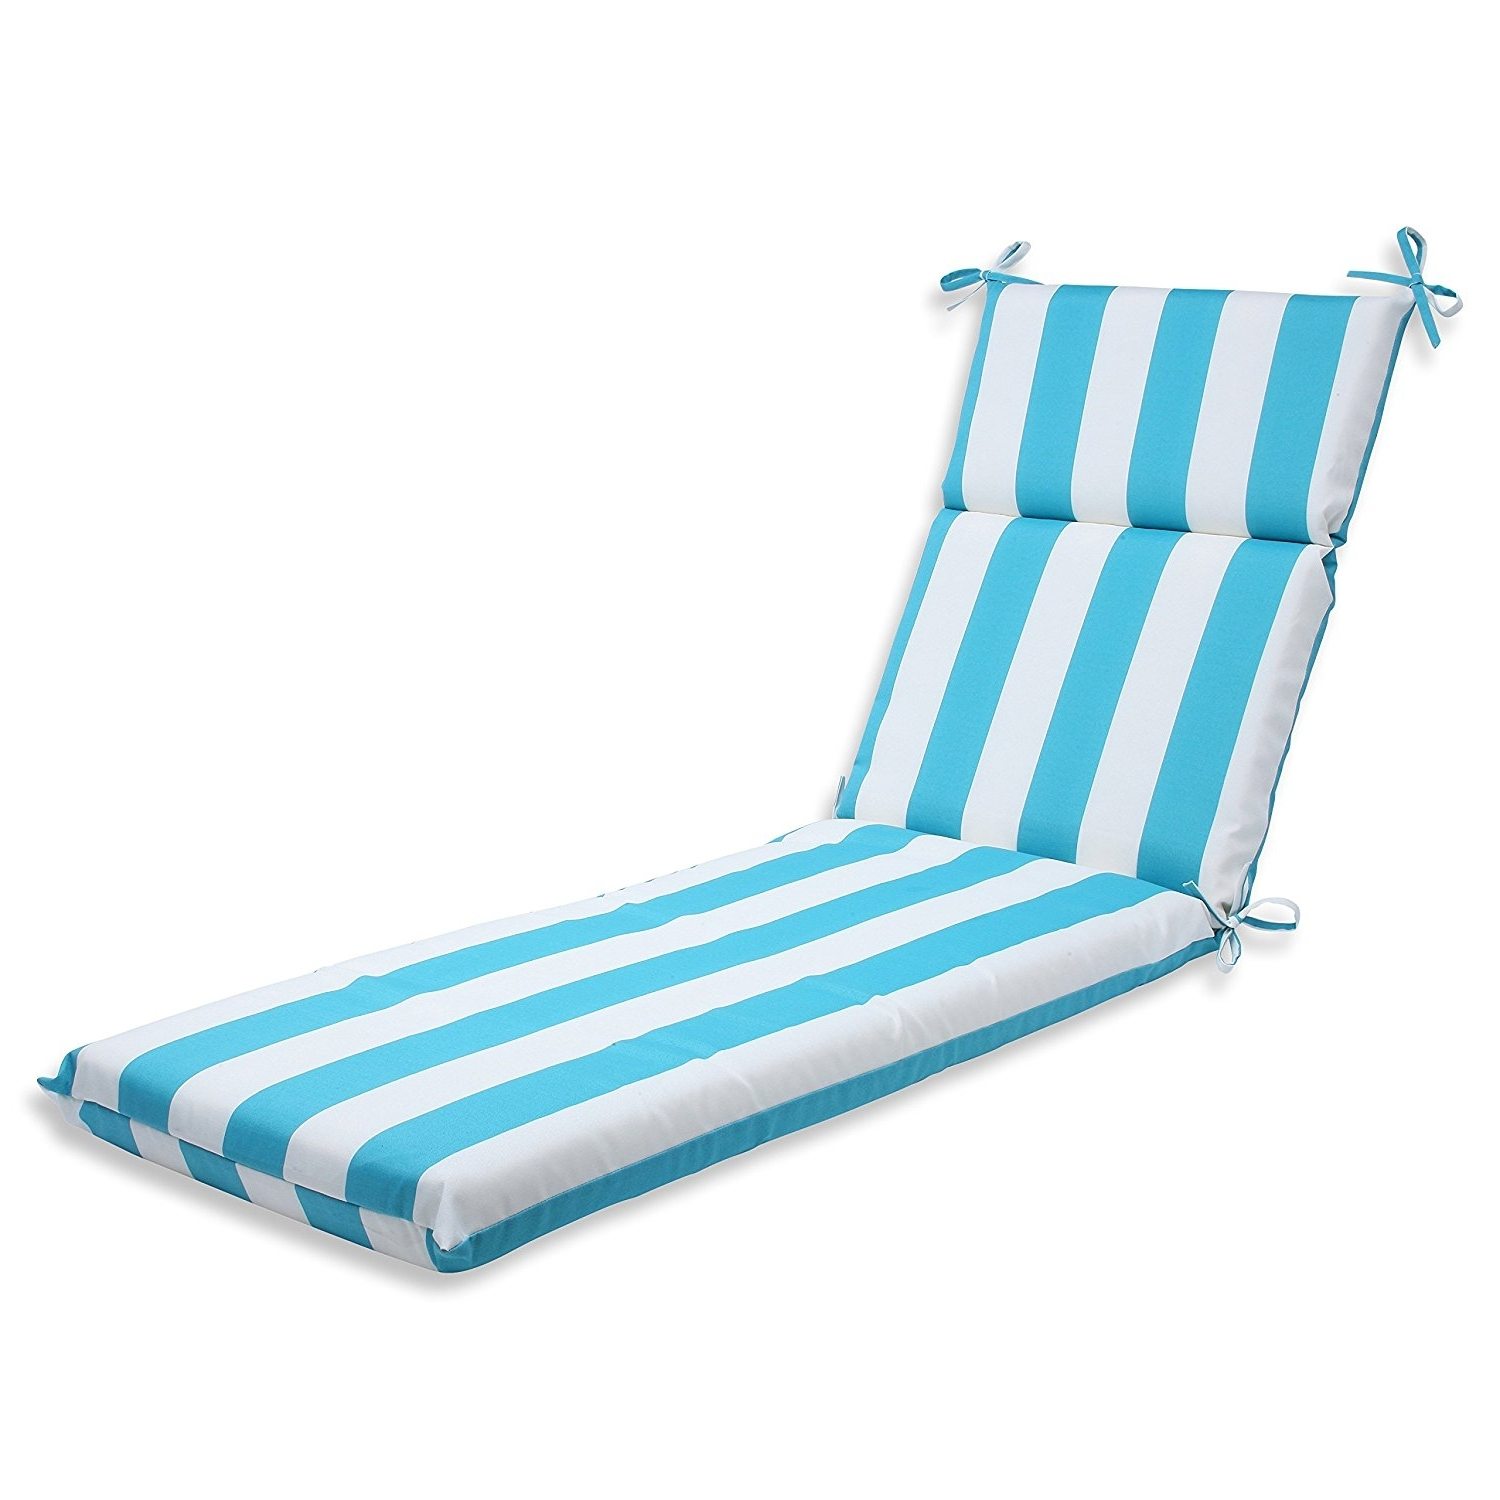 Chaise Lounge Chair Outdoor Cushions Regarding Latest Amazon: Pillow Perfect Outdoor Cabana Stripe Chaise Lounge (View 2 of 15)